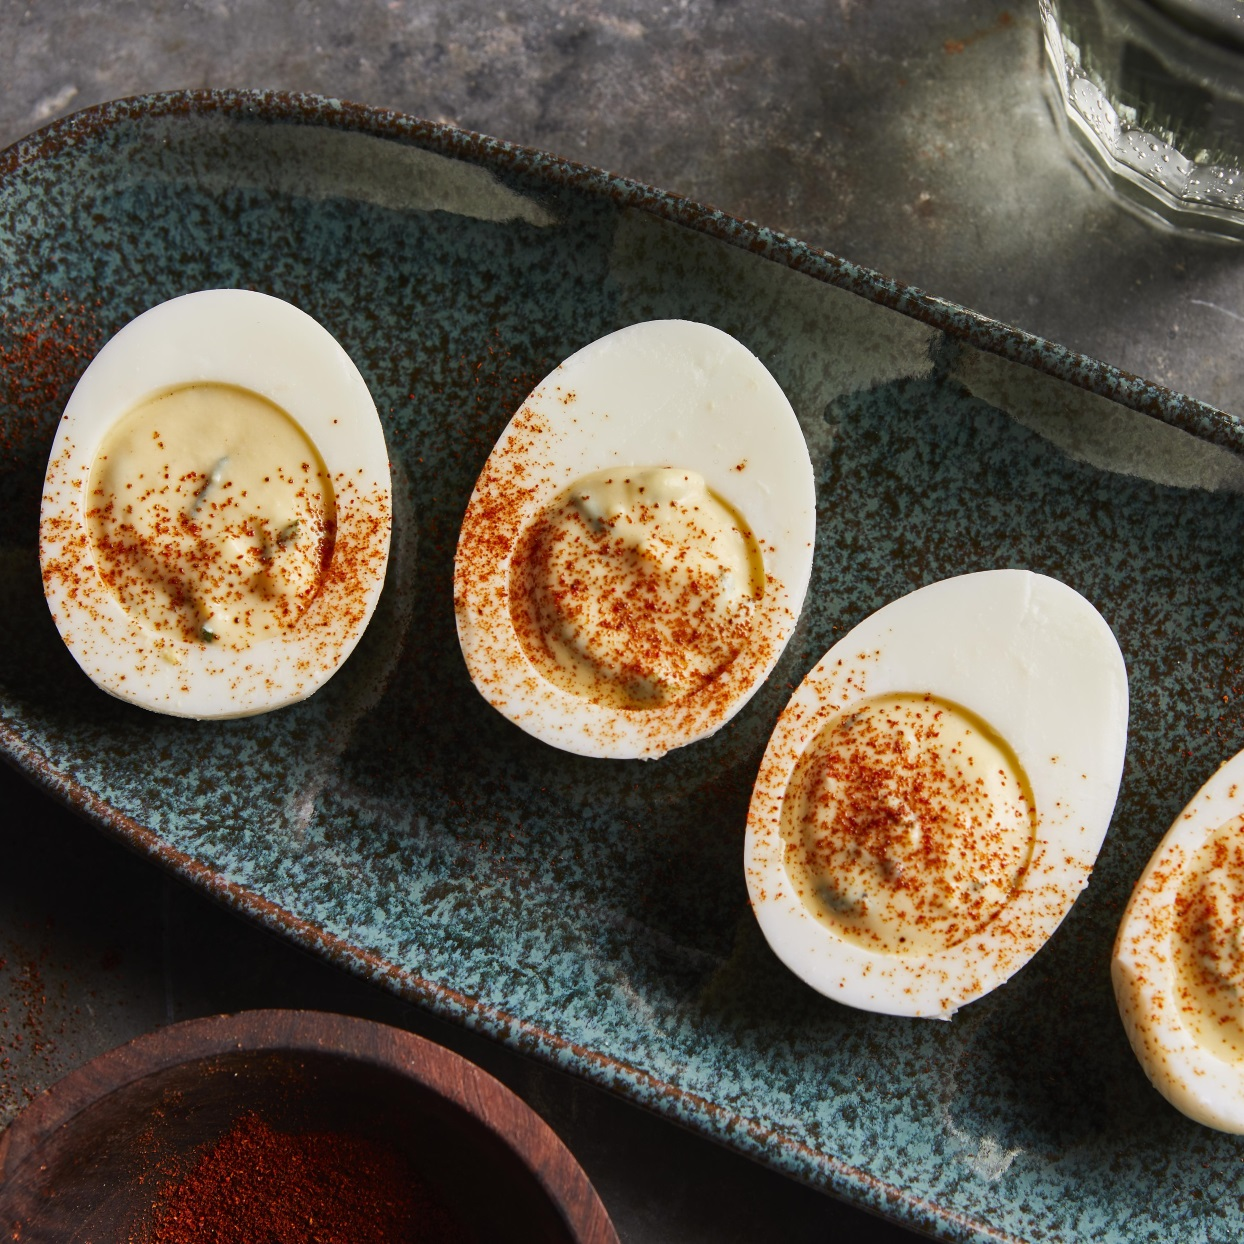 Deviled Eggs Trusted Brands